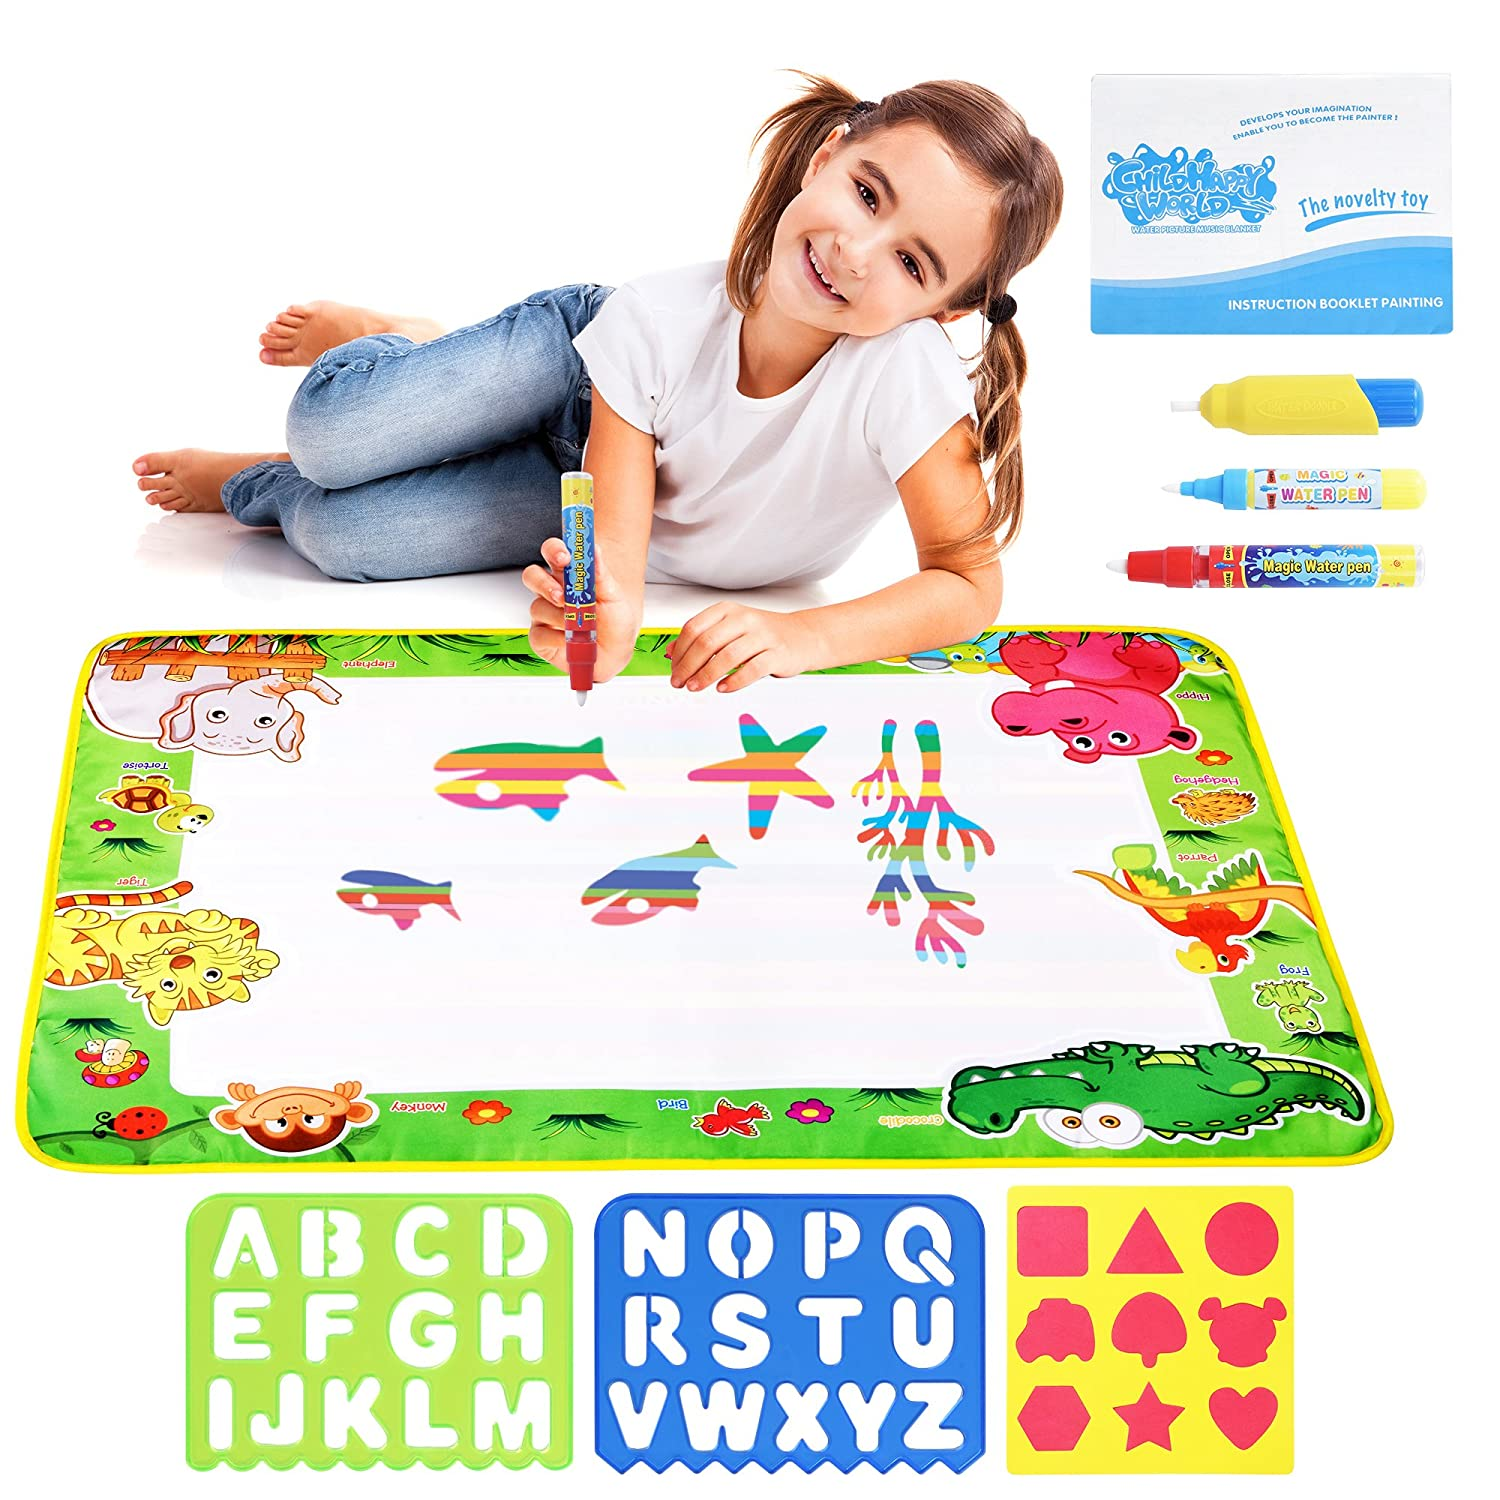 """Water Drawing Aqua Doodle Mats: Large 29"""" x 19"""" Water Doodle Pad with 3 Marker Pens, 1 Sheet of Shapes, 2 Alphabet Stencils & 1 Drawing Book - Art & Educational Toy for Kids - Toddler Boys & Girls Toy Zutan"""